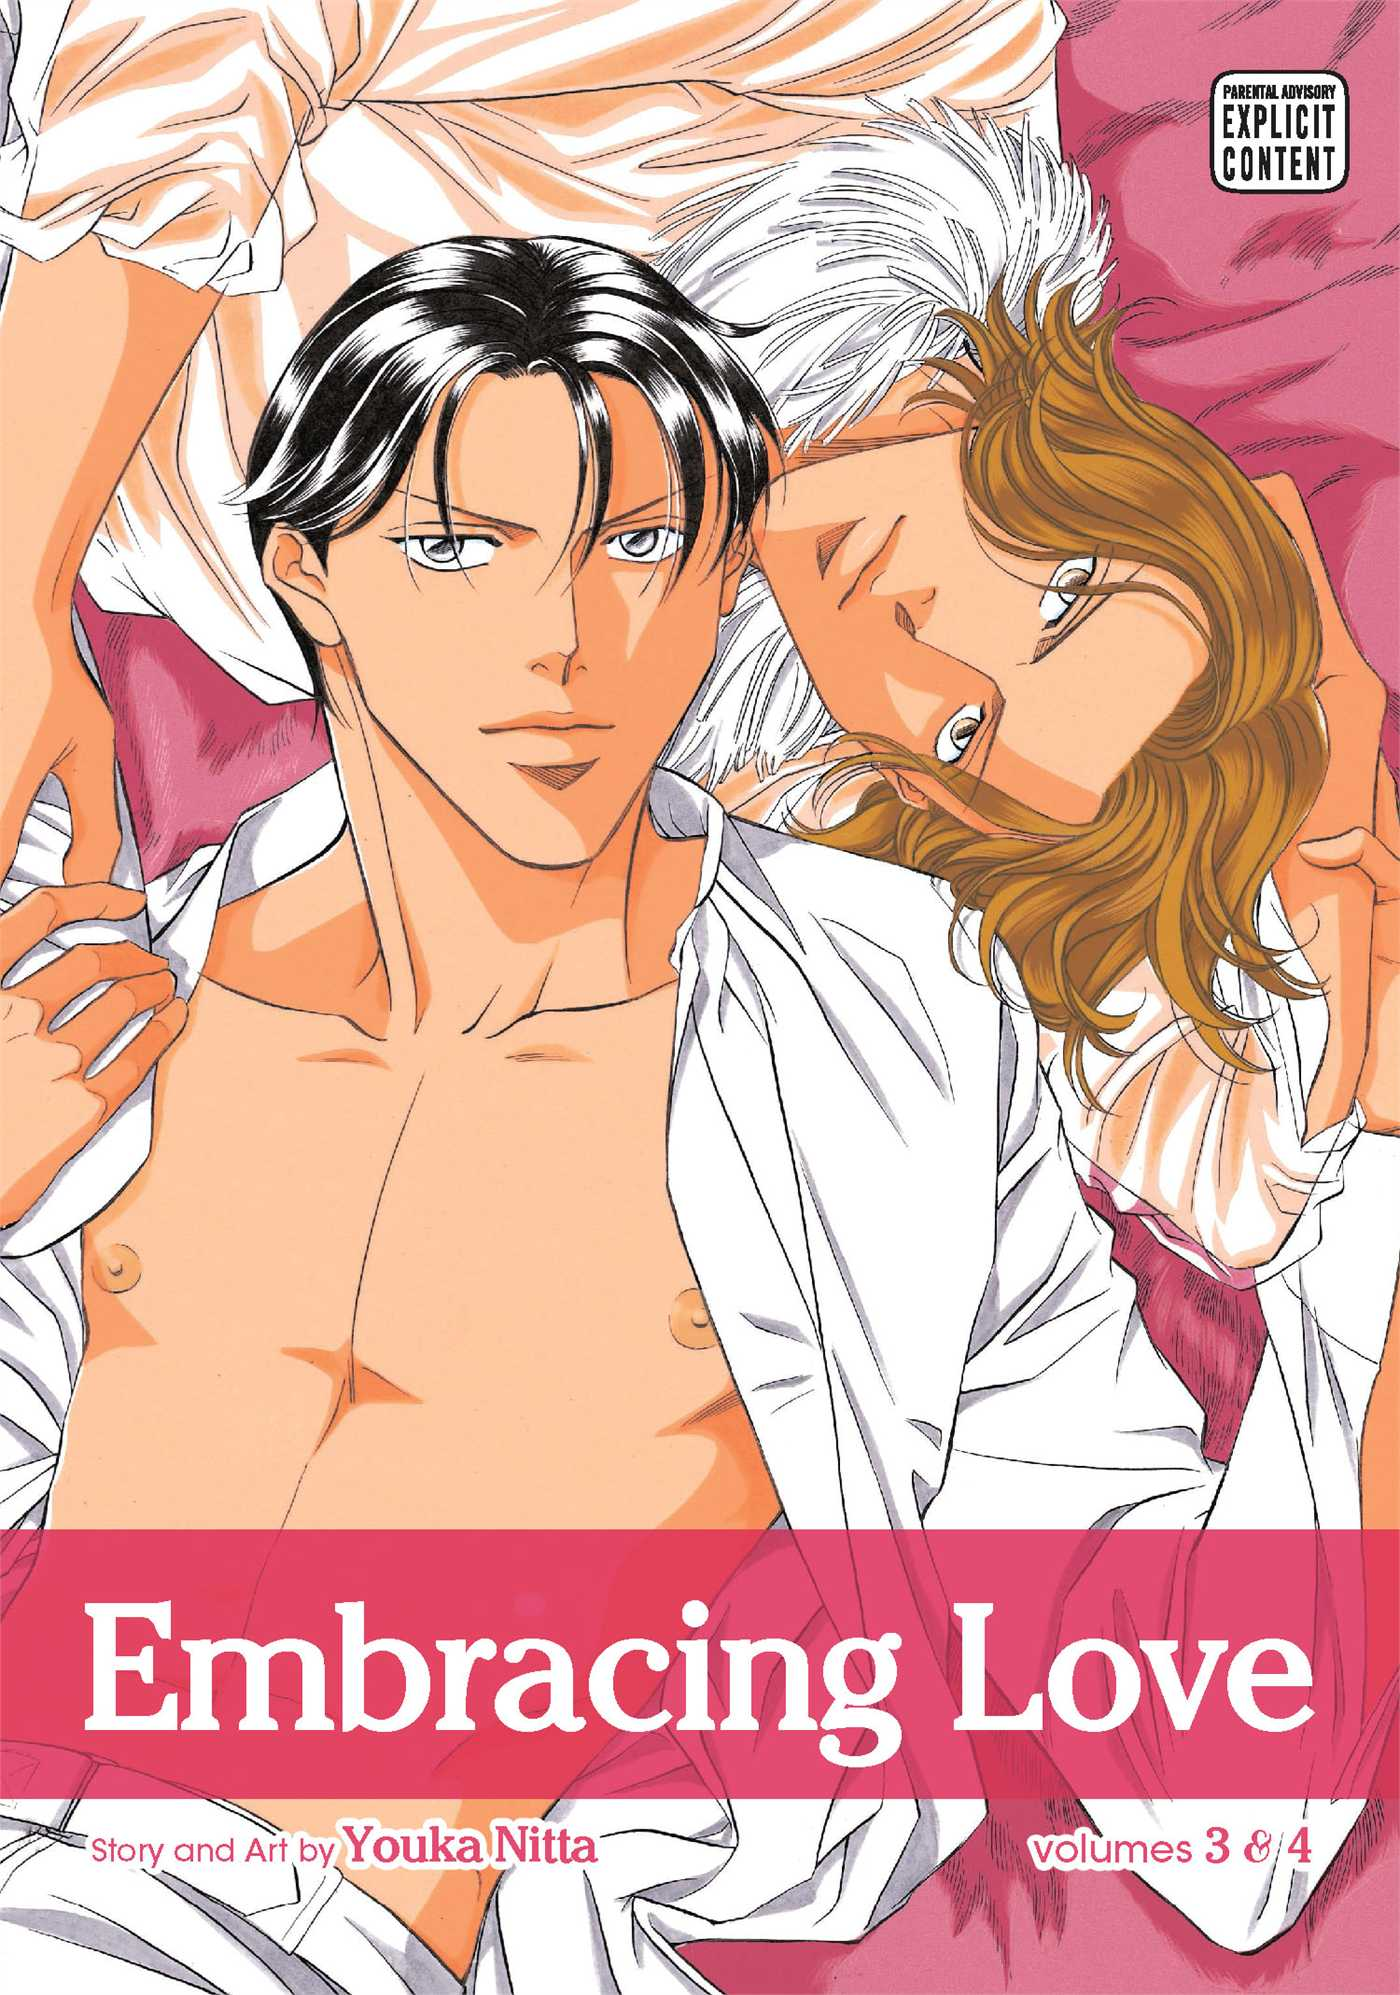 Embracing-love-2-in-1-vol-2-9781421559049_hr